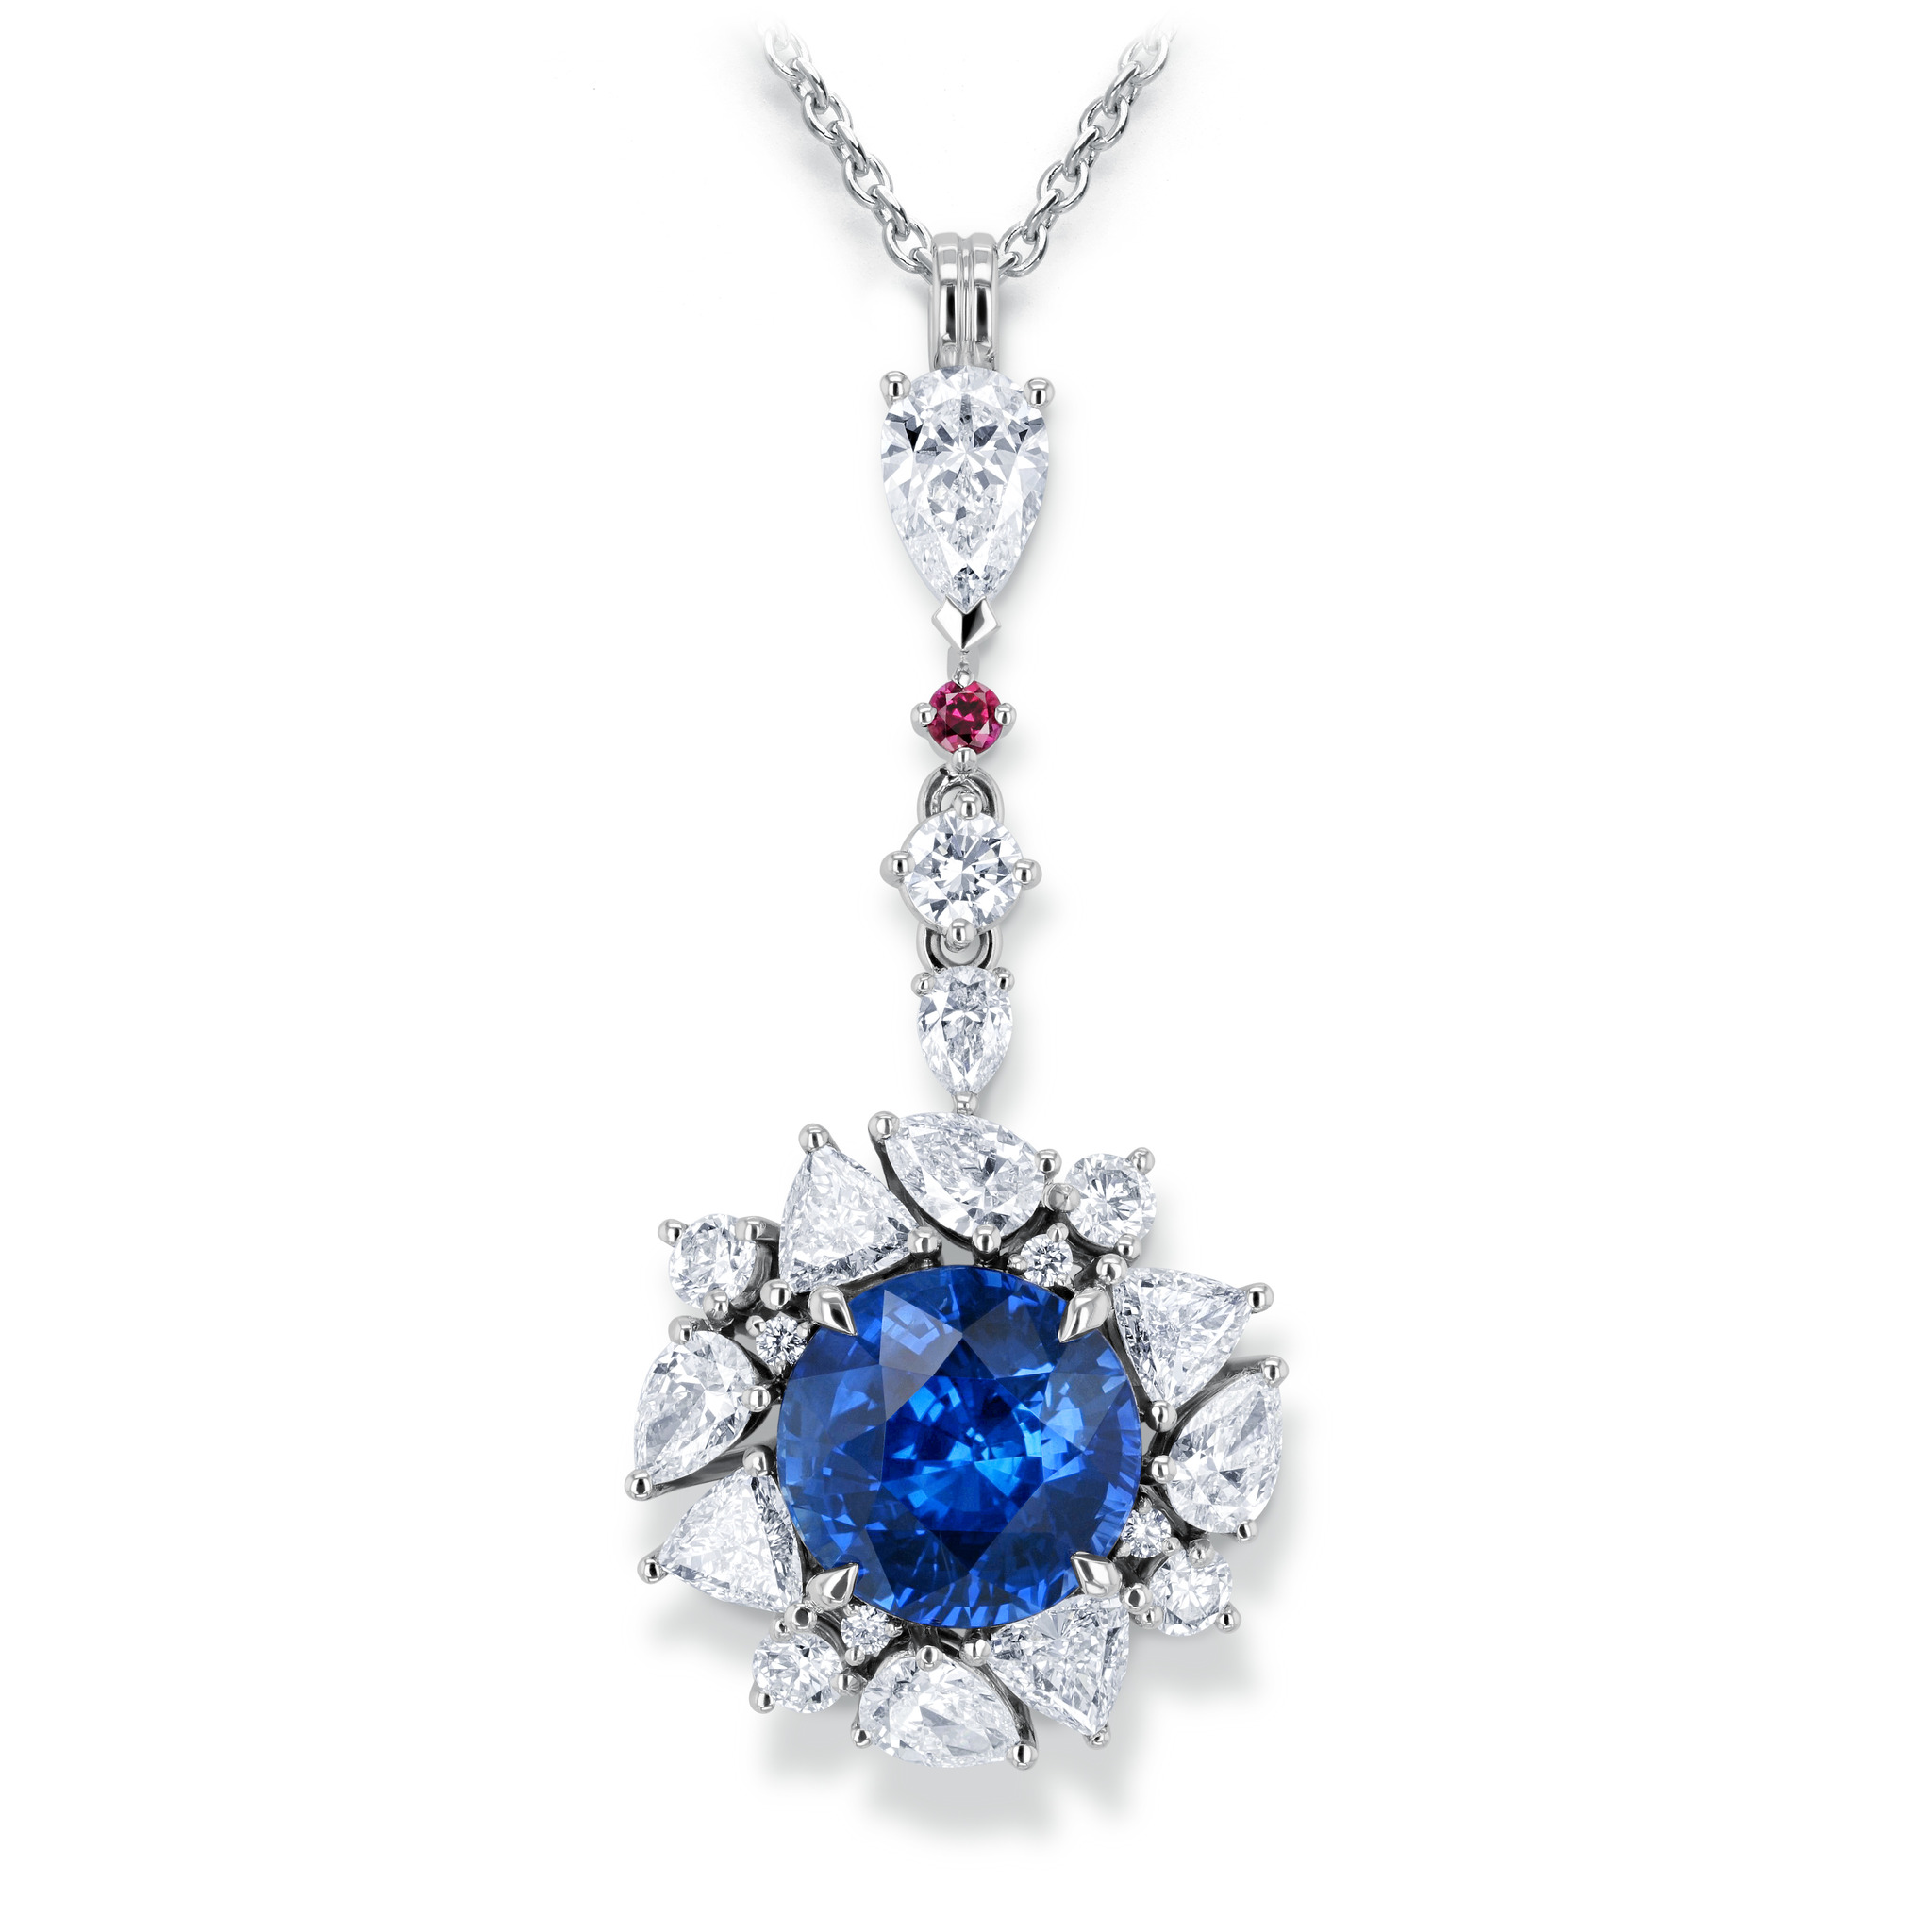 Necklace with sapphire